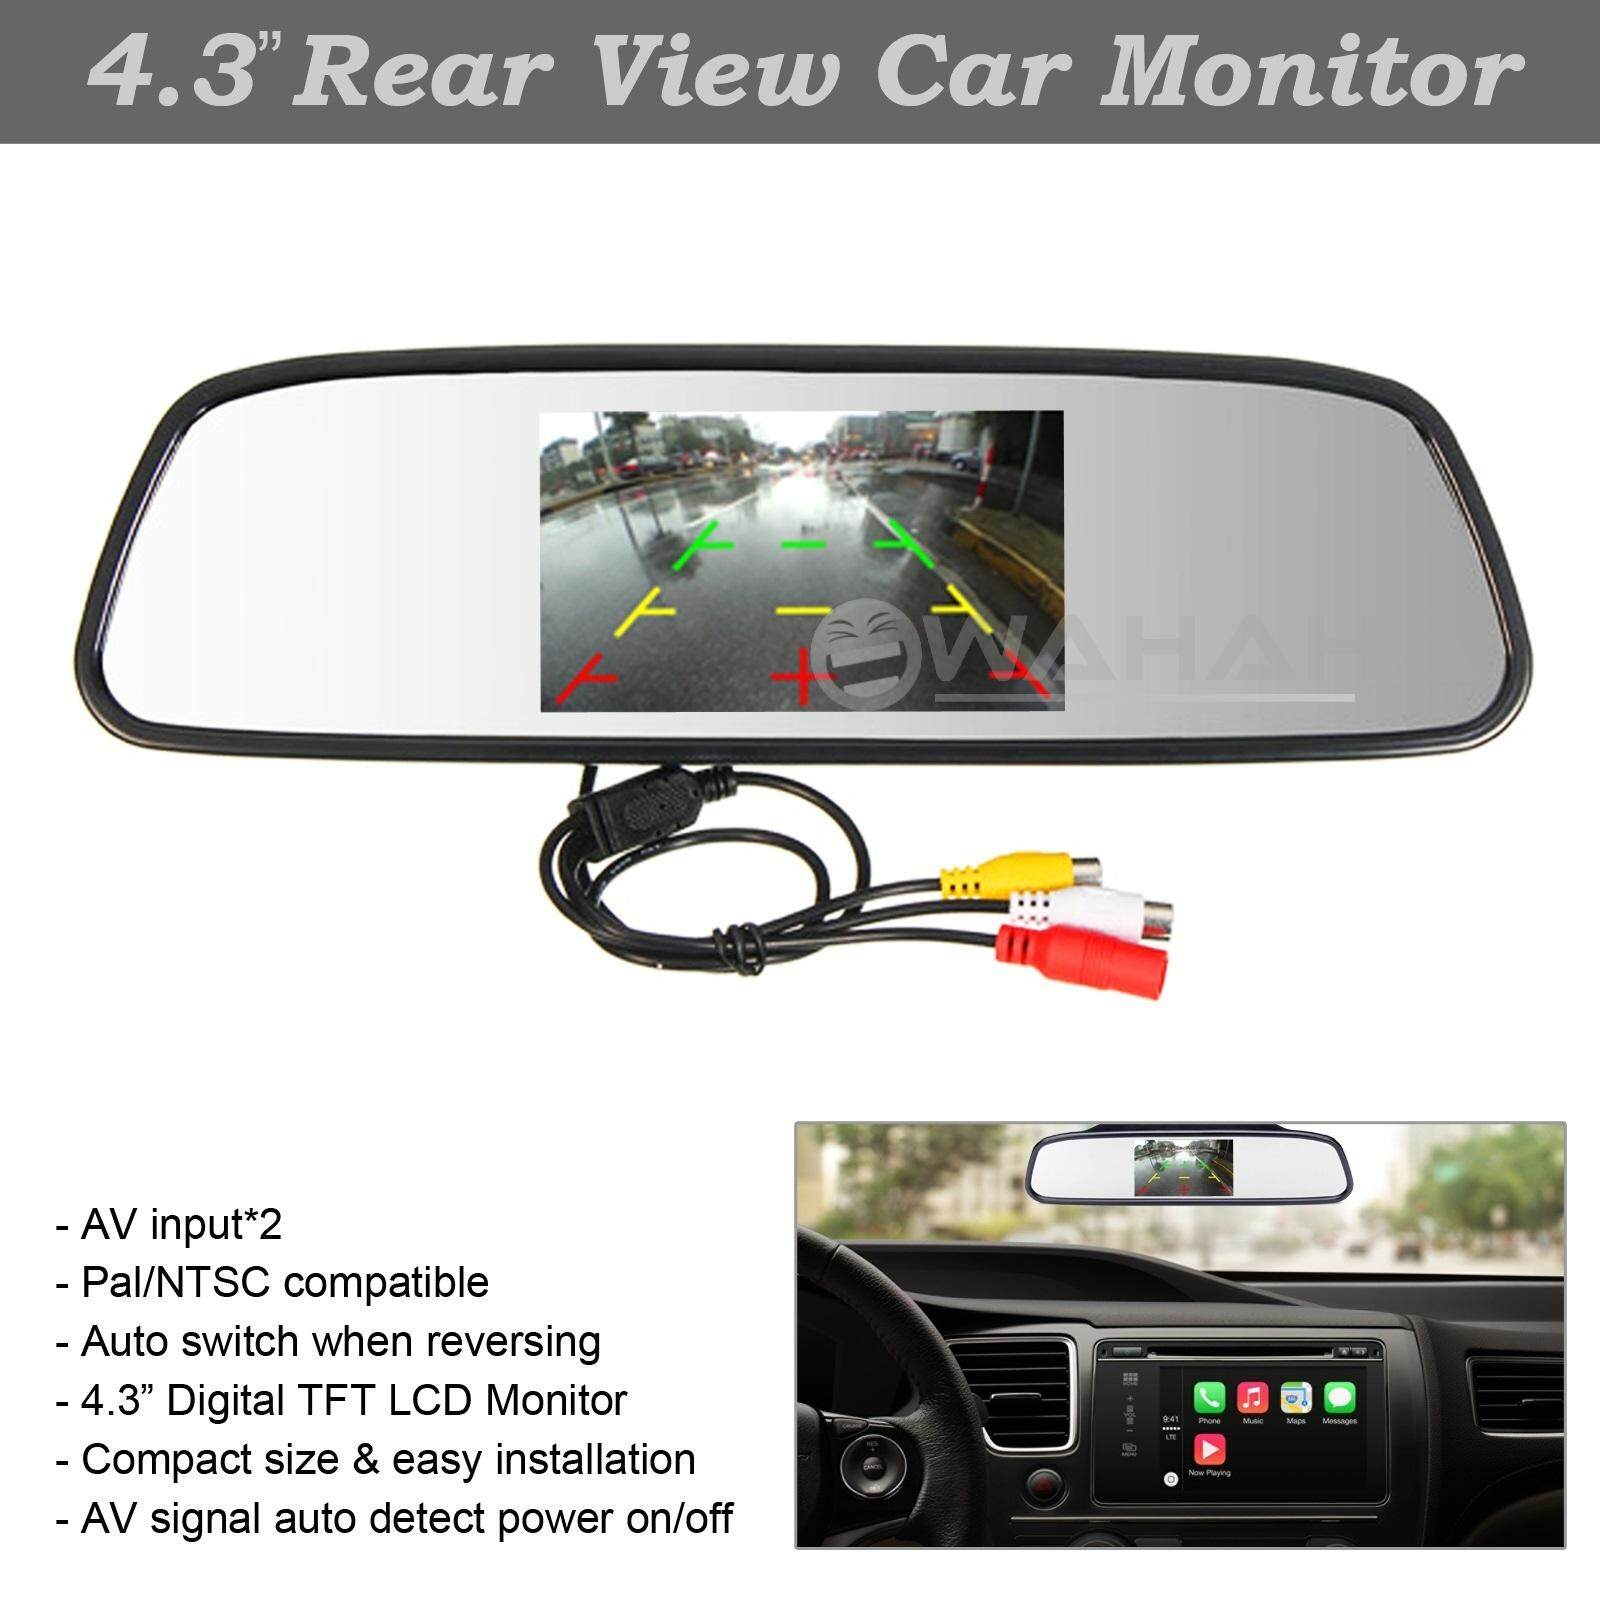 "Rear View Mirror with 4.3"" Rear View Camera Screen LCD Monitor Display"